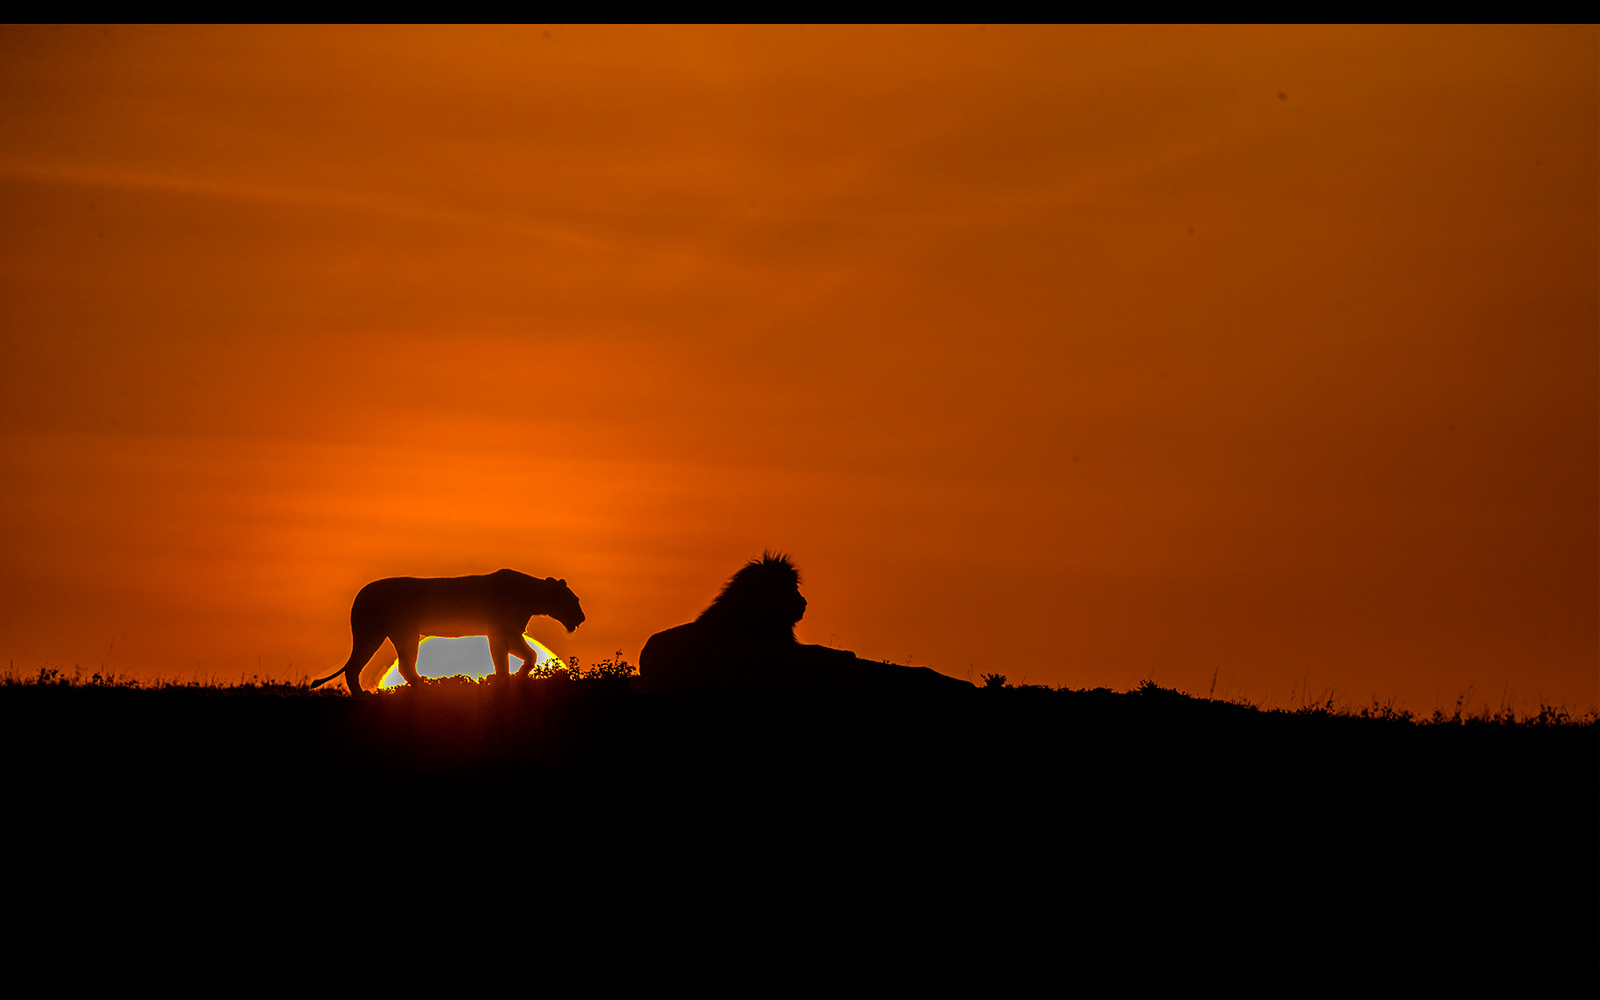 """Lion sunrise"" in Maasai Mara National Reserve, Kenya ©  Chandrashekar Kalyanasundaram"